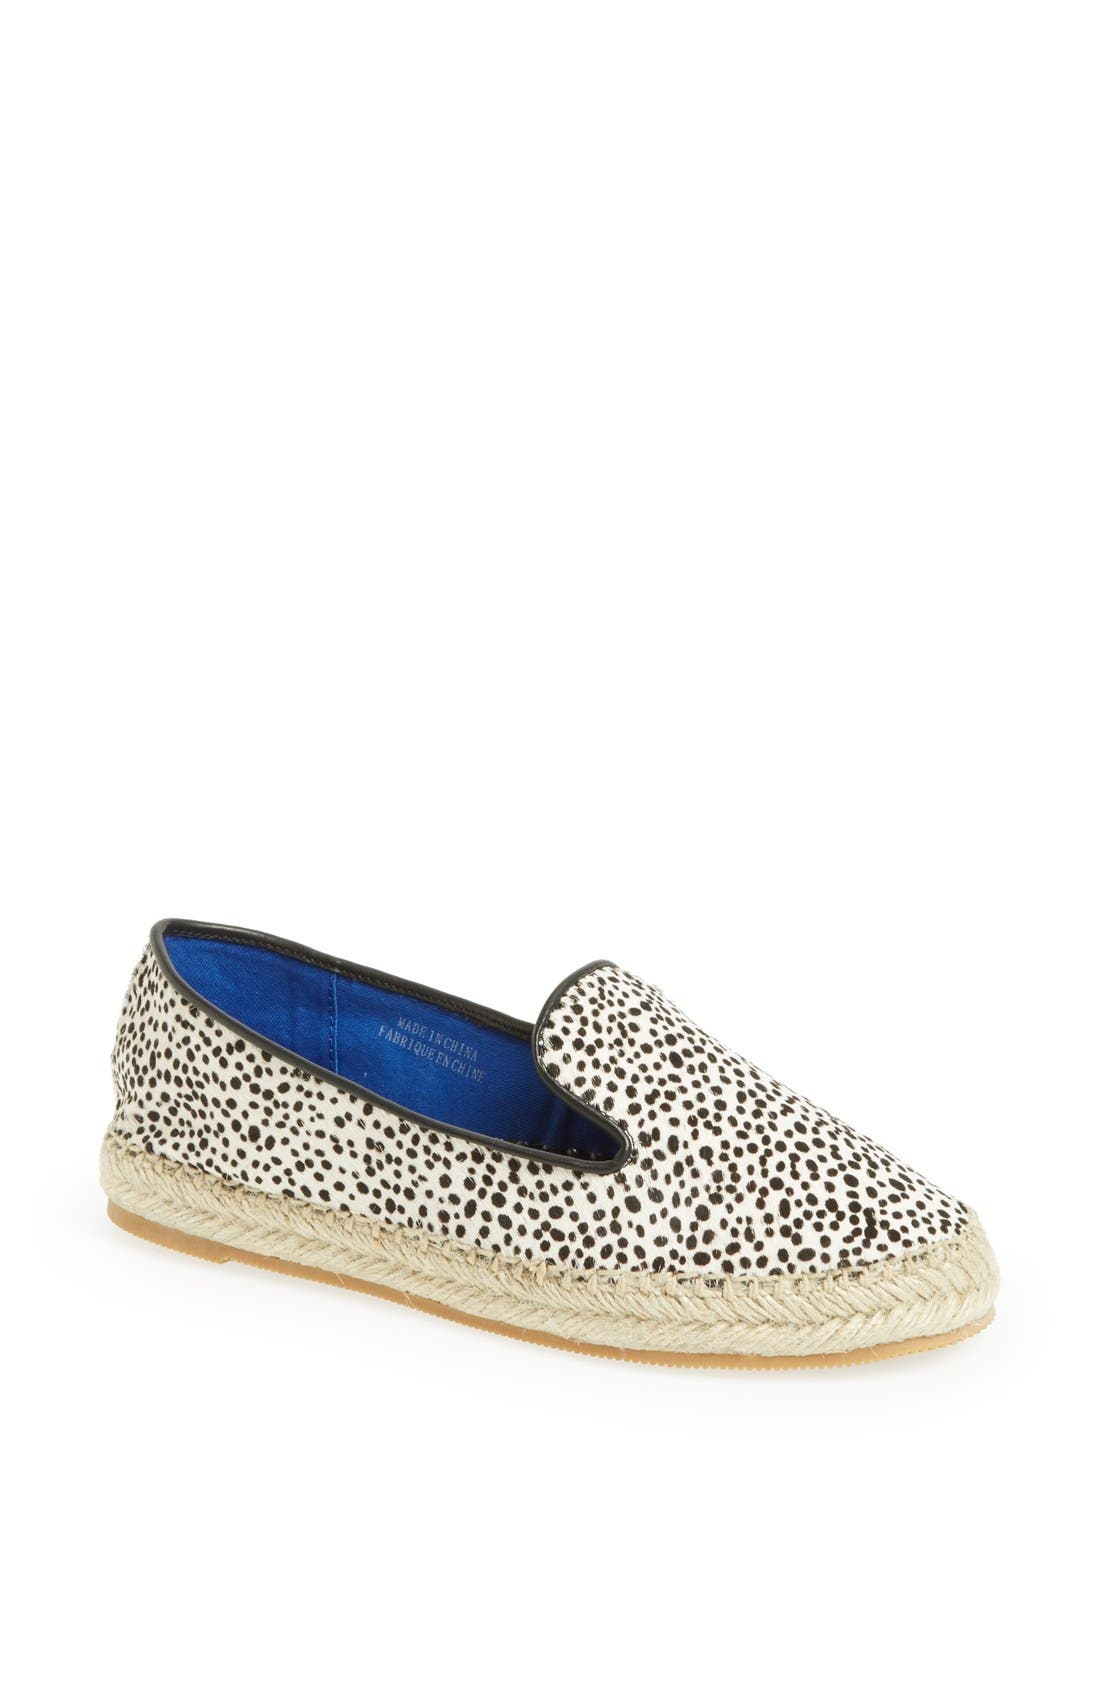 Alternate Image 1 Selected - Jeffrey Campbell 'Abides' Printed Calf Hair Espadrille Flat